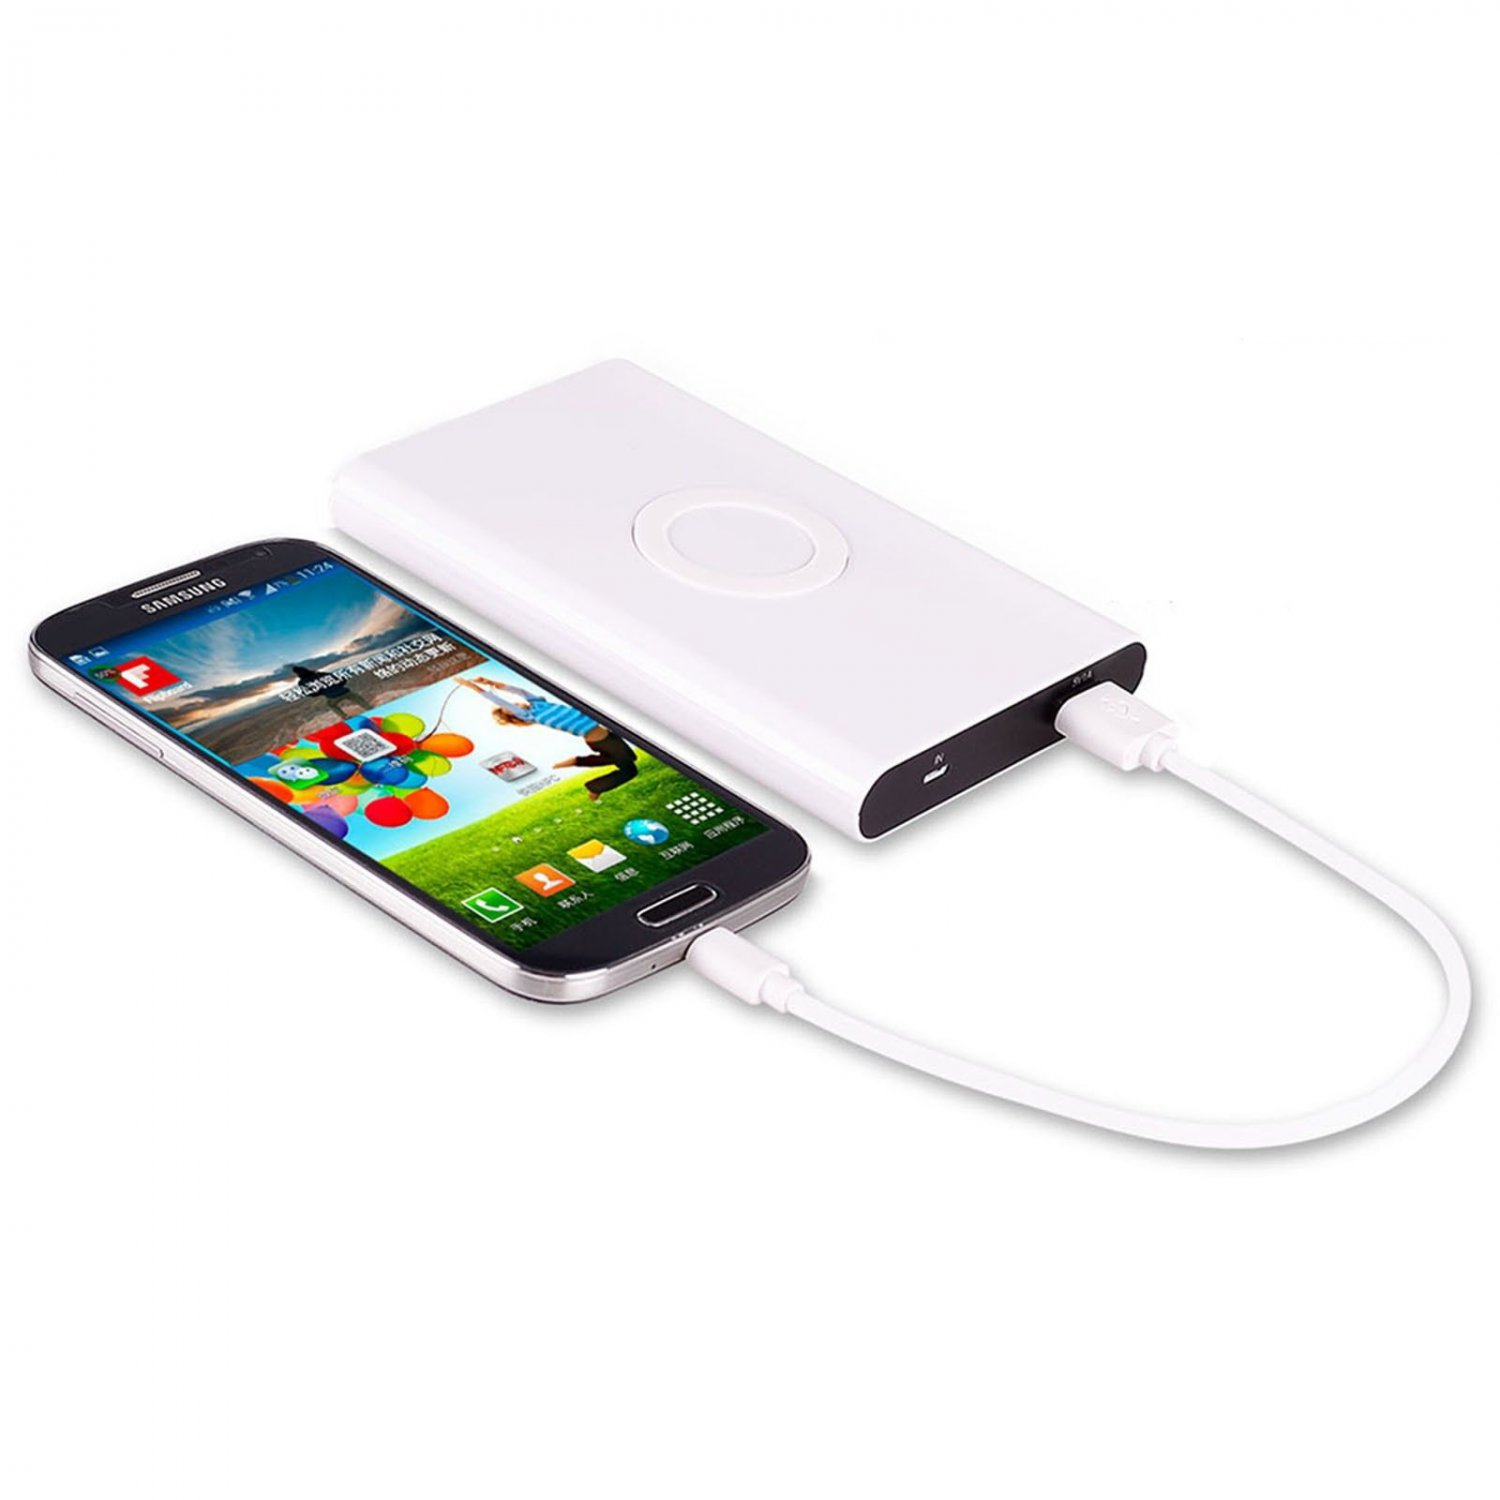 Qi 700 mAh Power Bank Wireless Charger Pad + Receiver for Samsung S3 S4 Note 2/3